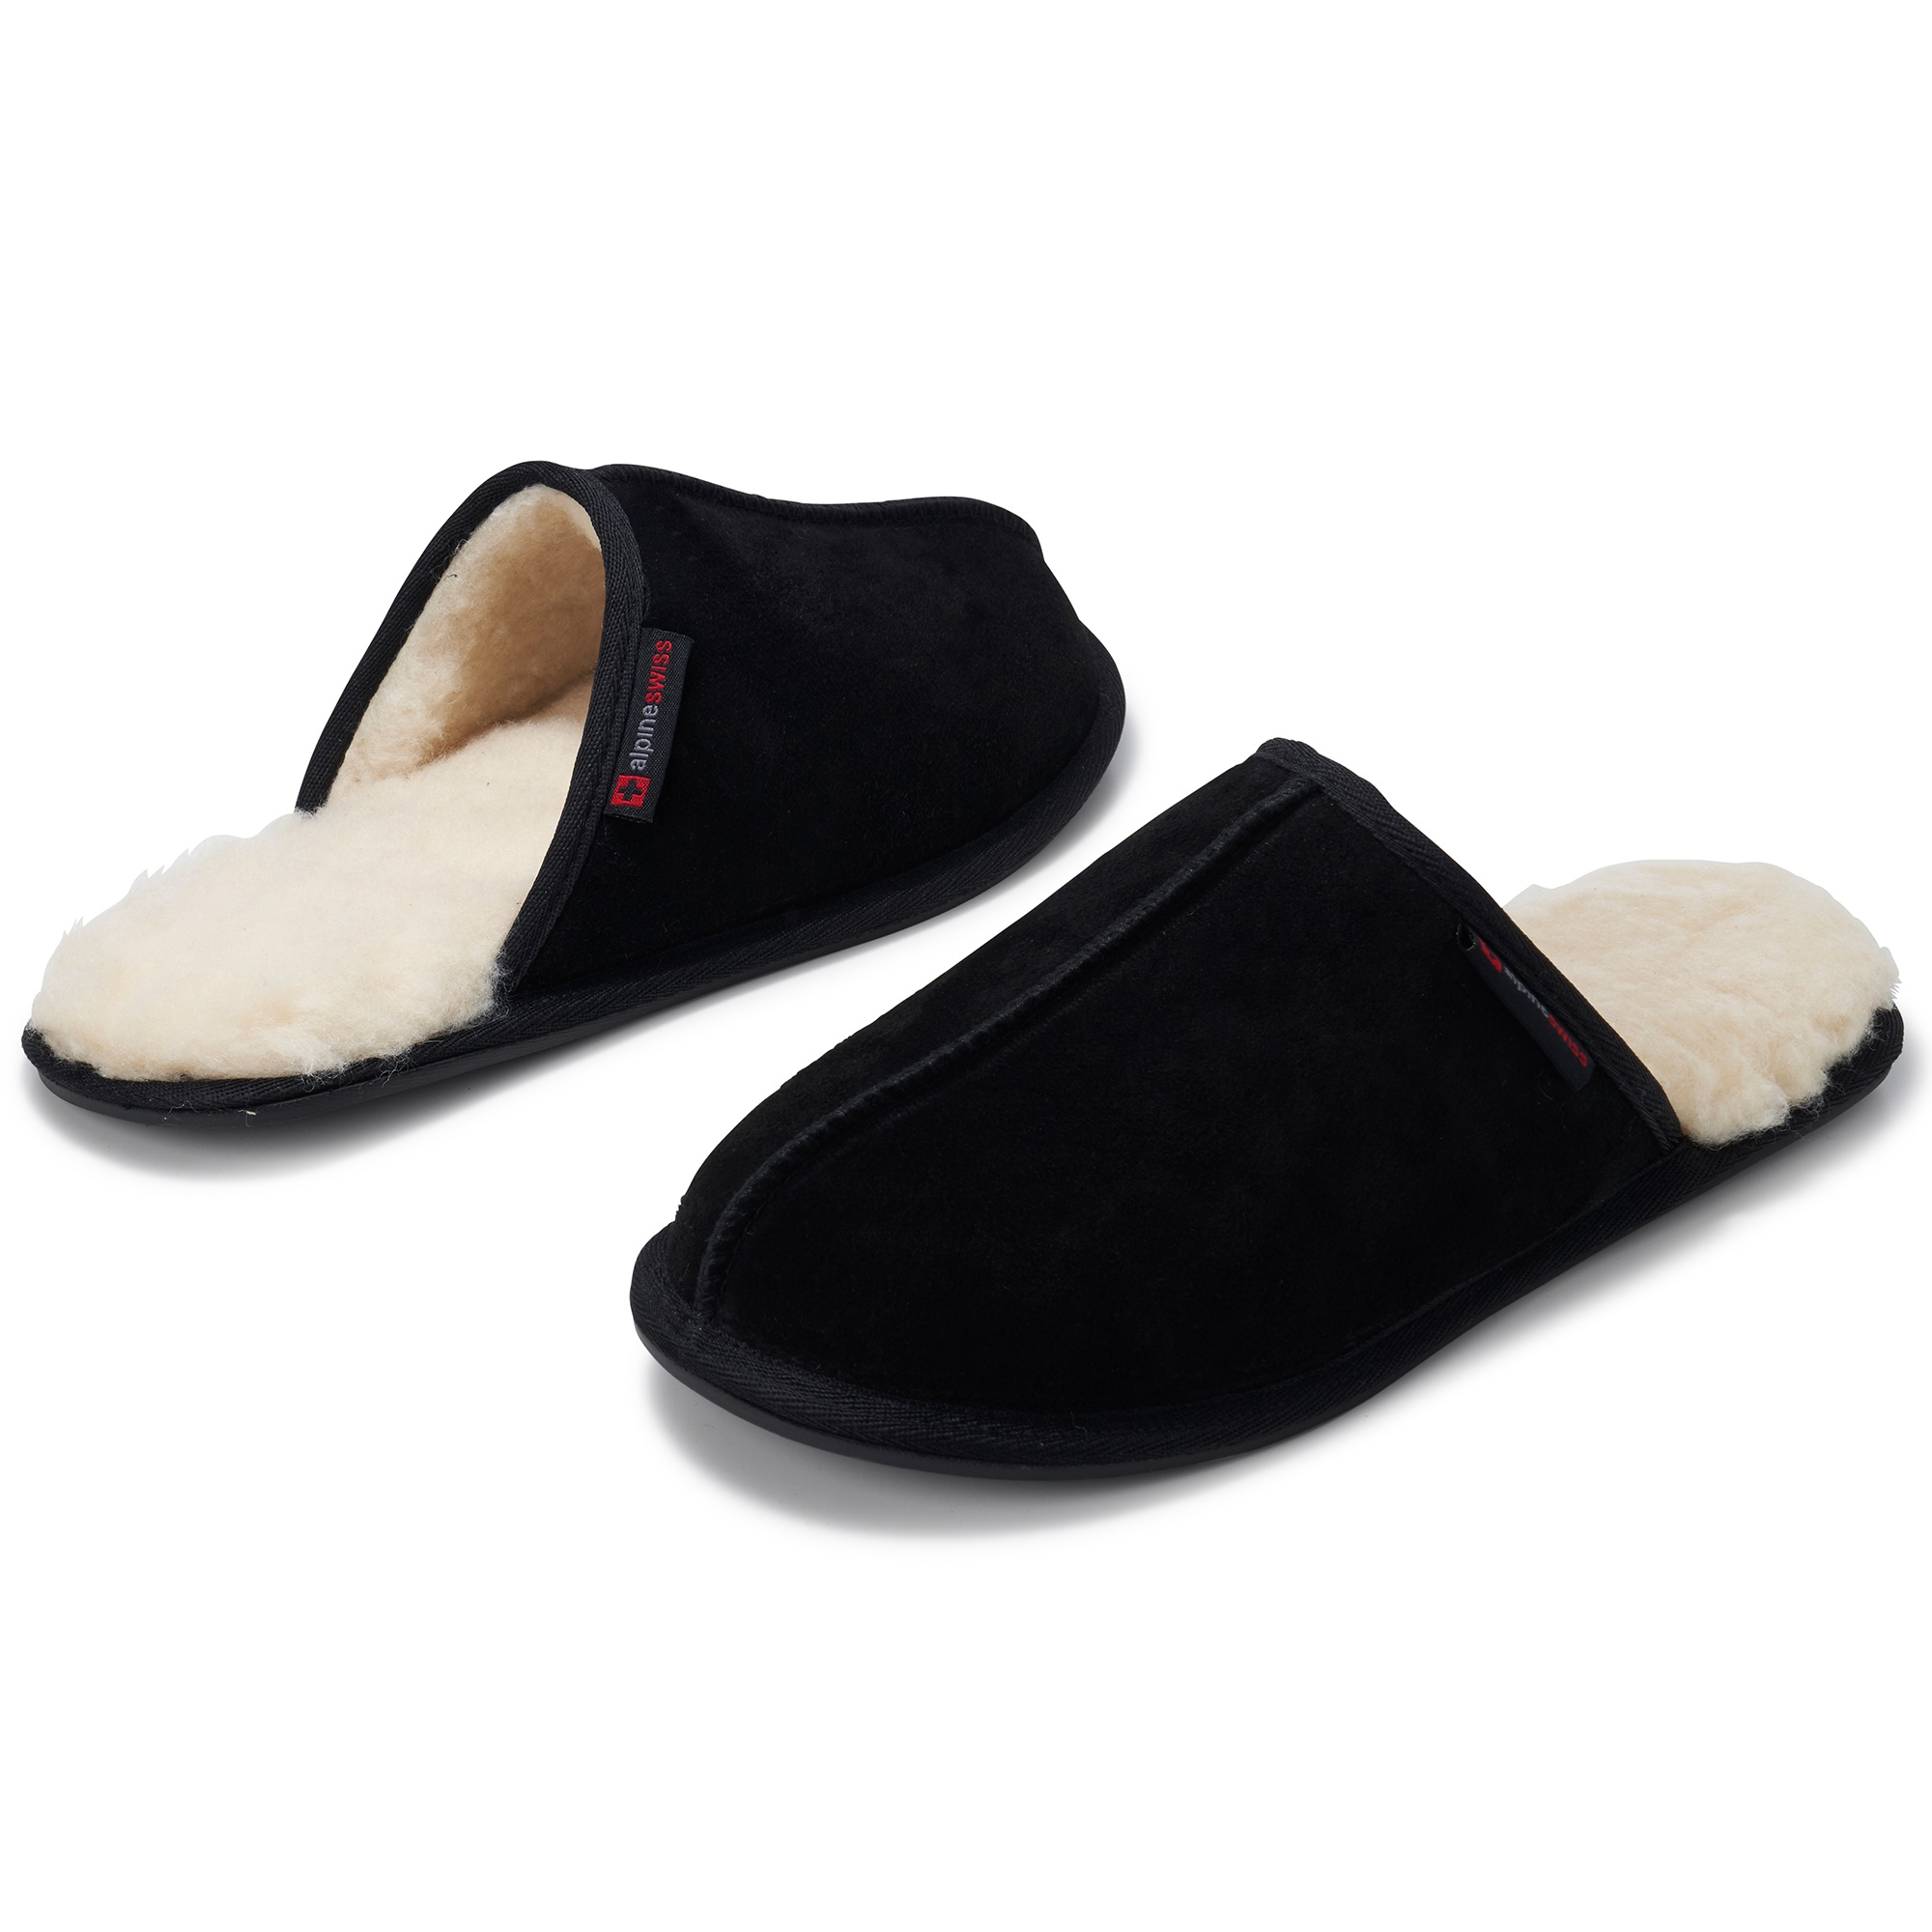 Alpine-Swiss-Mens-Suede-Memory-Foam-Scuff-Slippers-Comfort-Slip-On-House-Shoes thumbnail 14